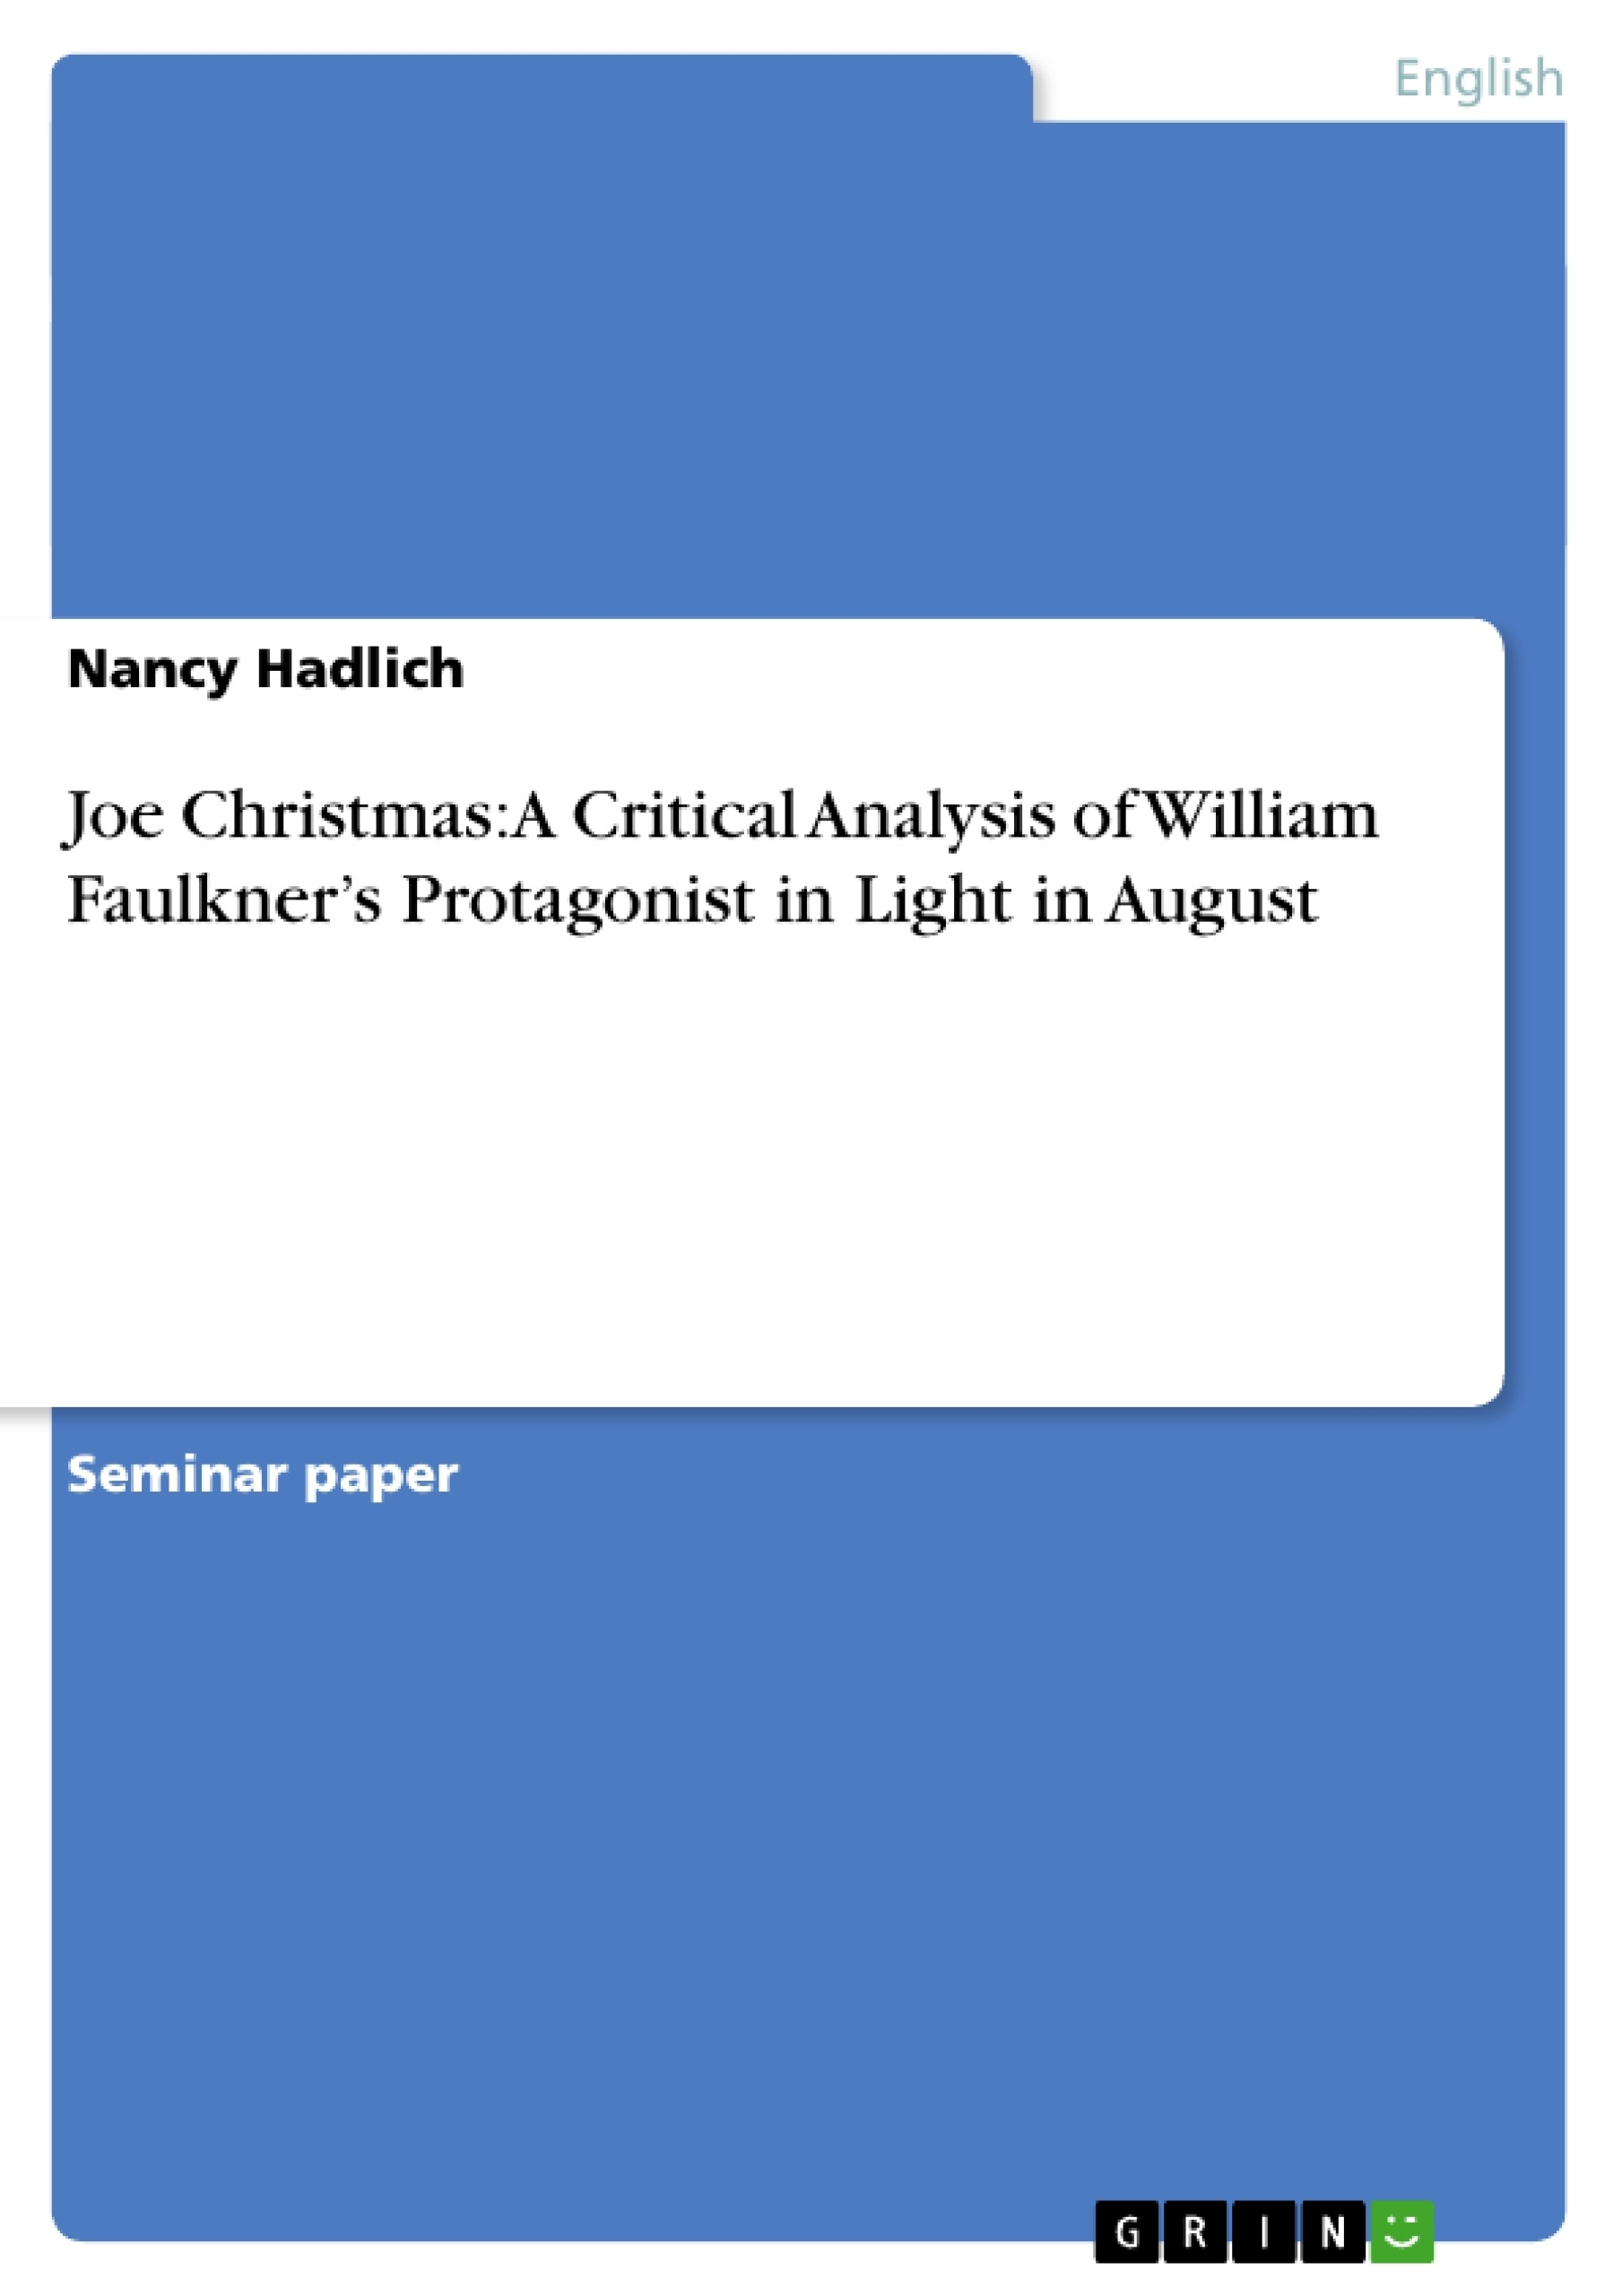 Title: Joe Christmas: A Critical Analysis of William Faulkner's Protagonist in Light in August